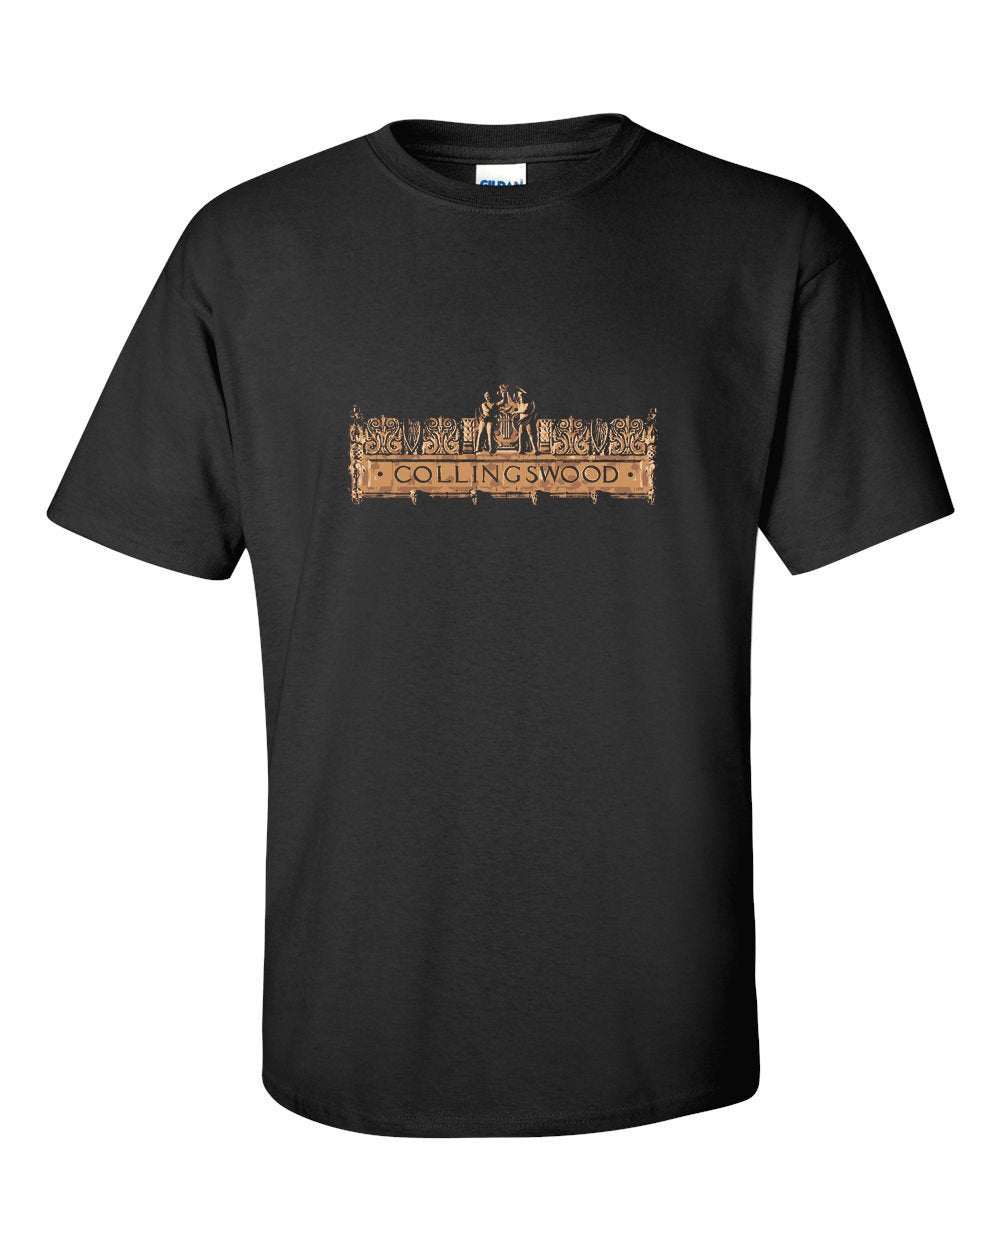 Collingswood Crest Mens/Unisex T-Shirt